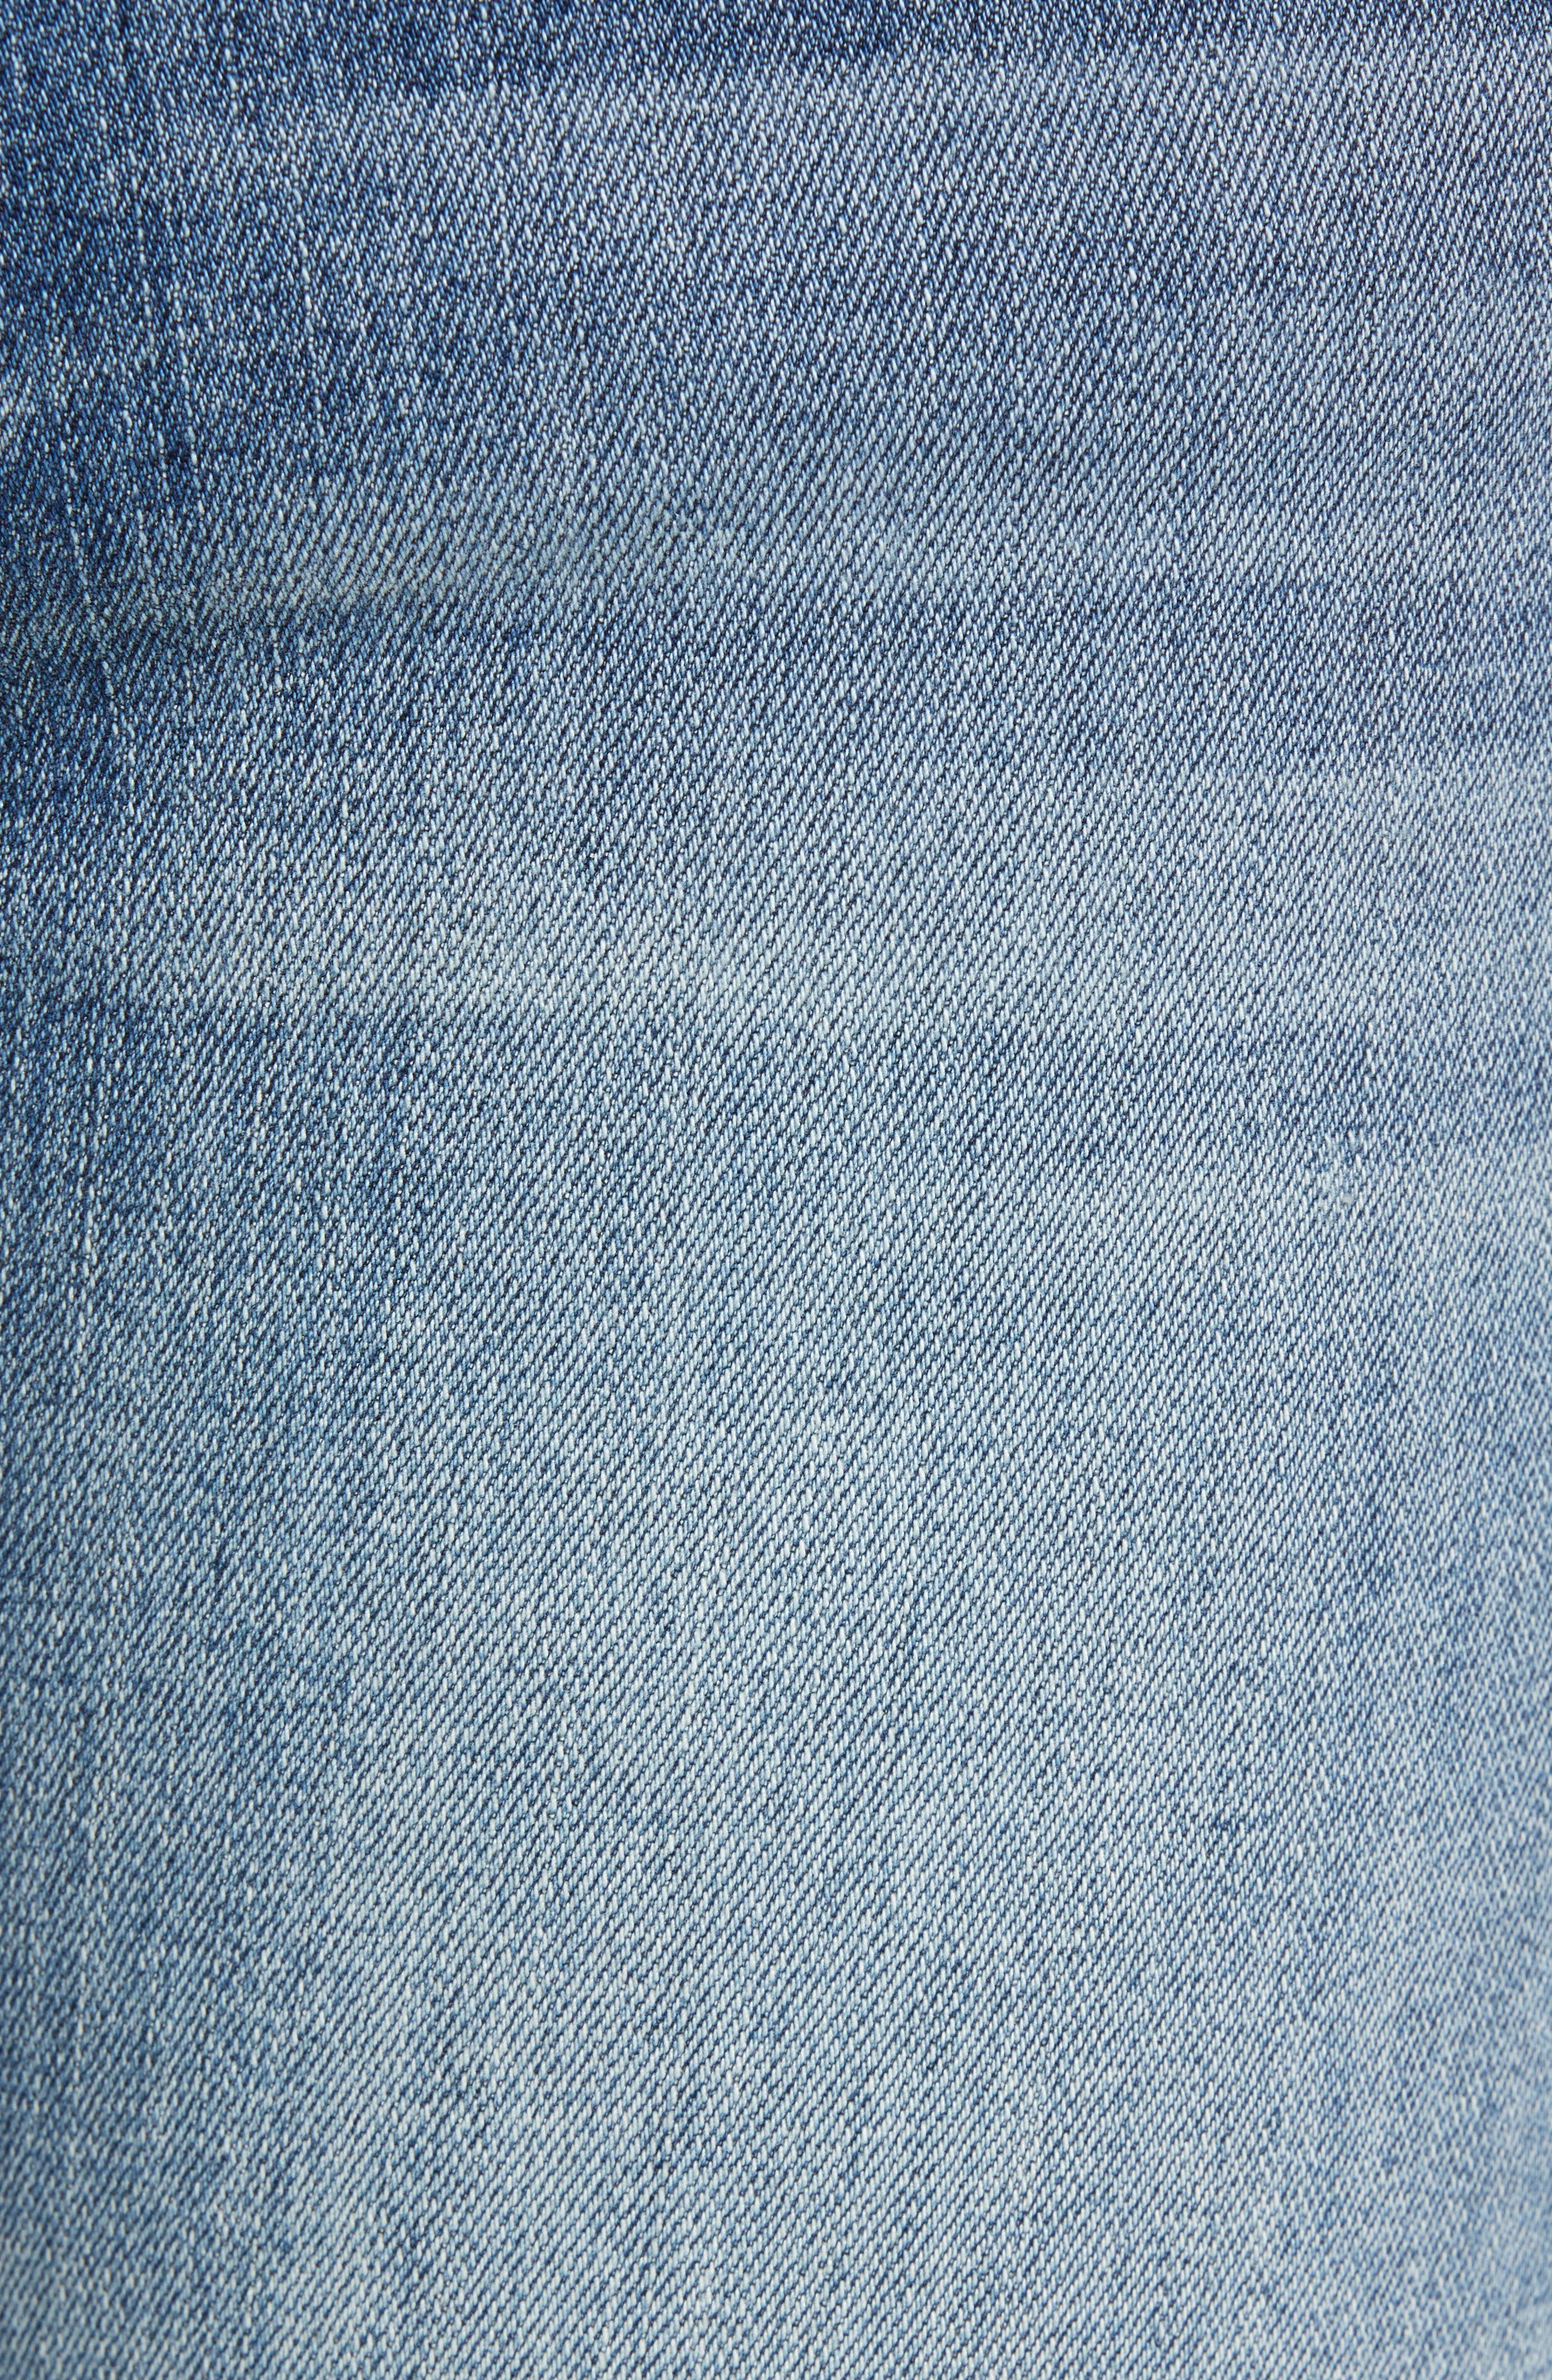 7 FOR ALL MANKIND<SUP>®</SUP>, Dojo Wide Leg Jeans, Alternate thumbnail 6, color, BAIR AUTHENTIC FORTUNE